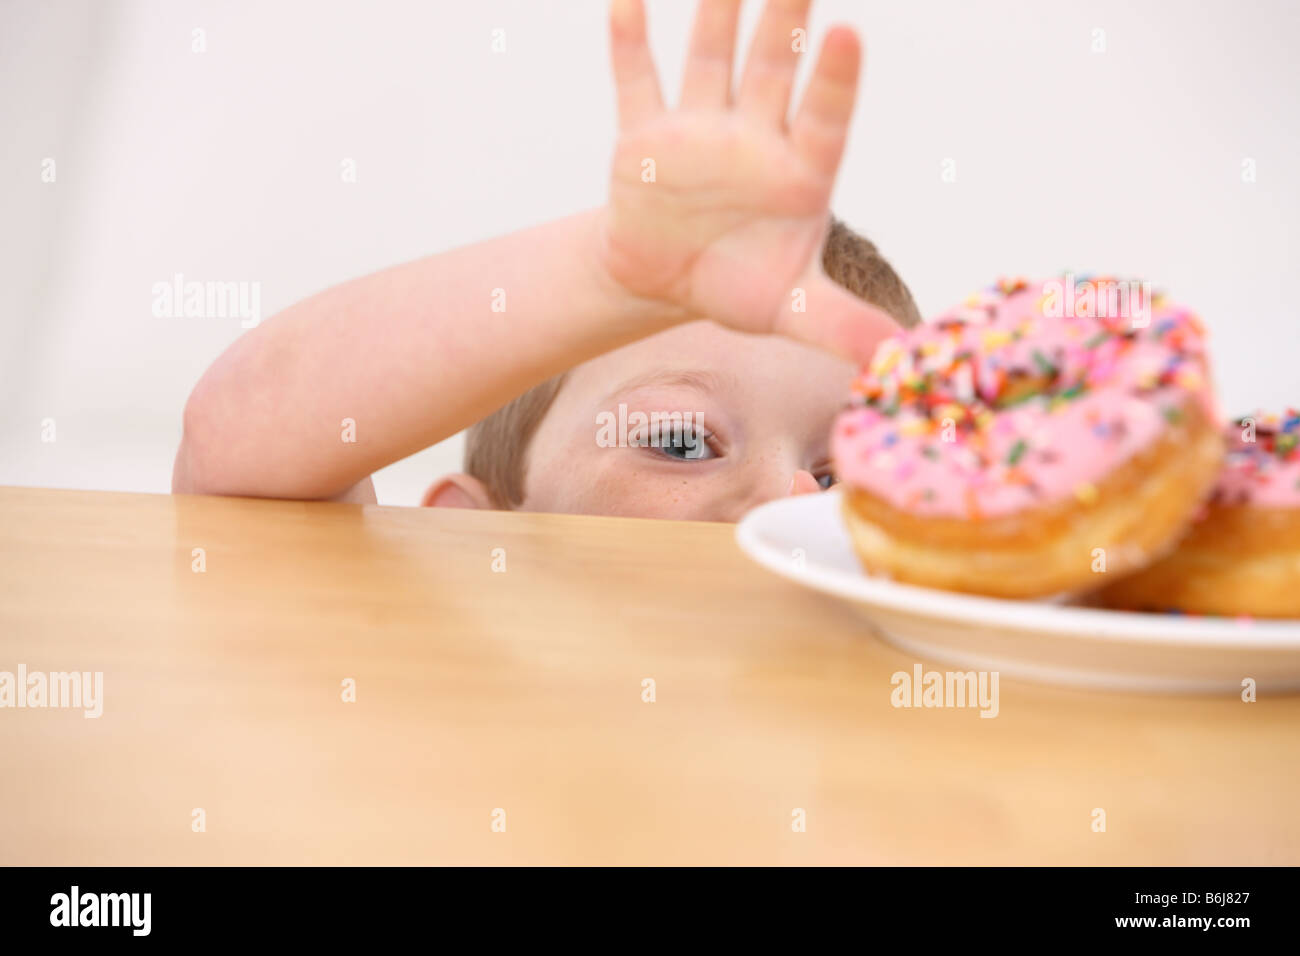 Young boy reaching for donuts on table - Stock Image